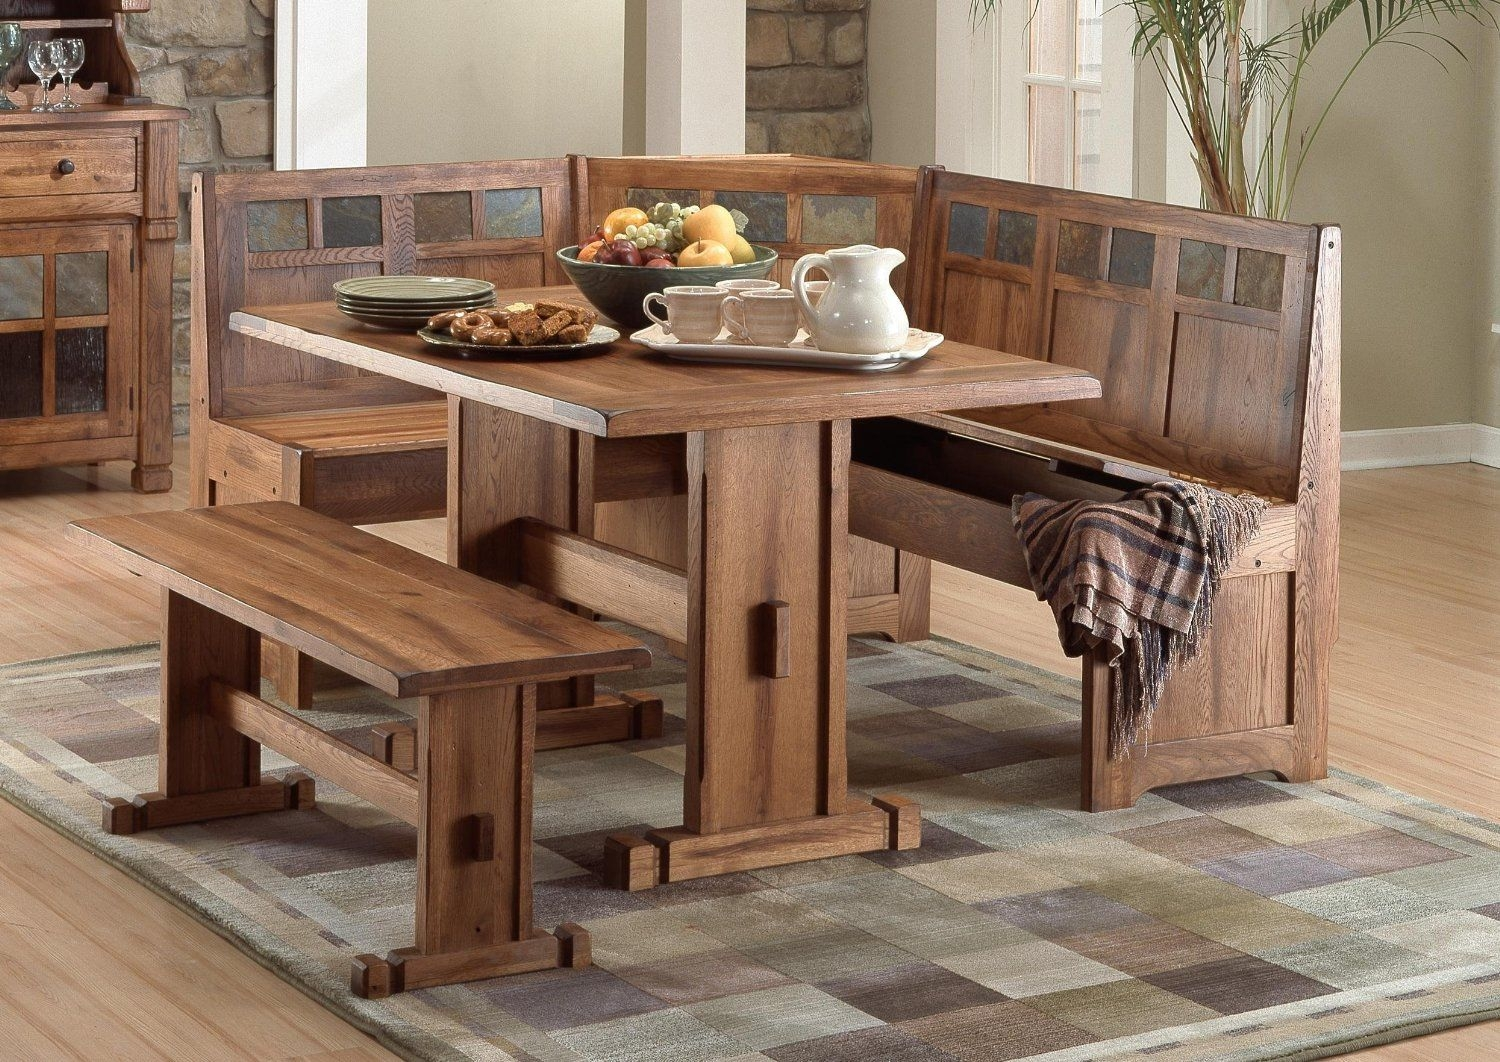 wood kitchen table with bench seating designs ideas dining bench